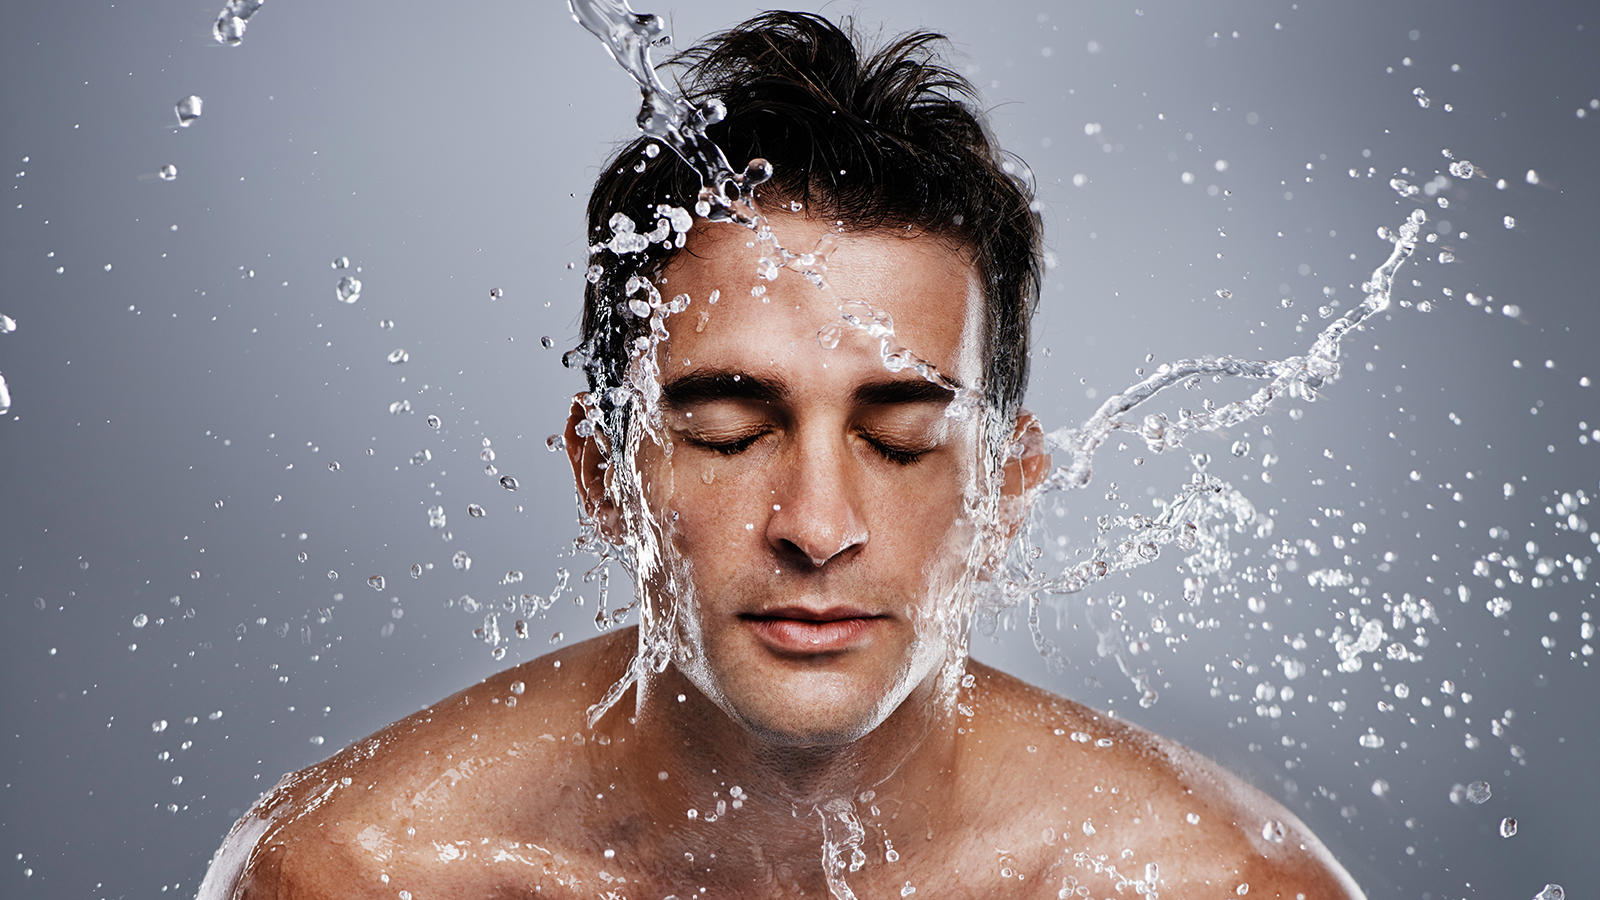 Man splashing water on his face